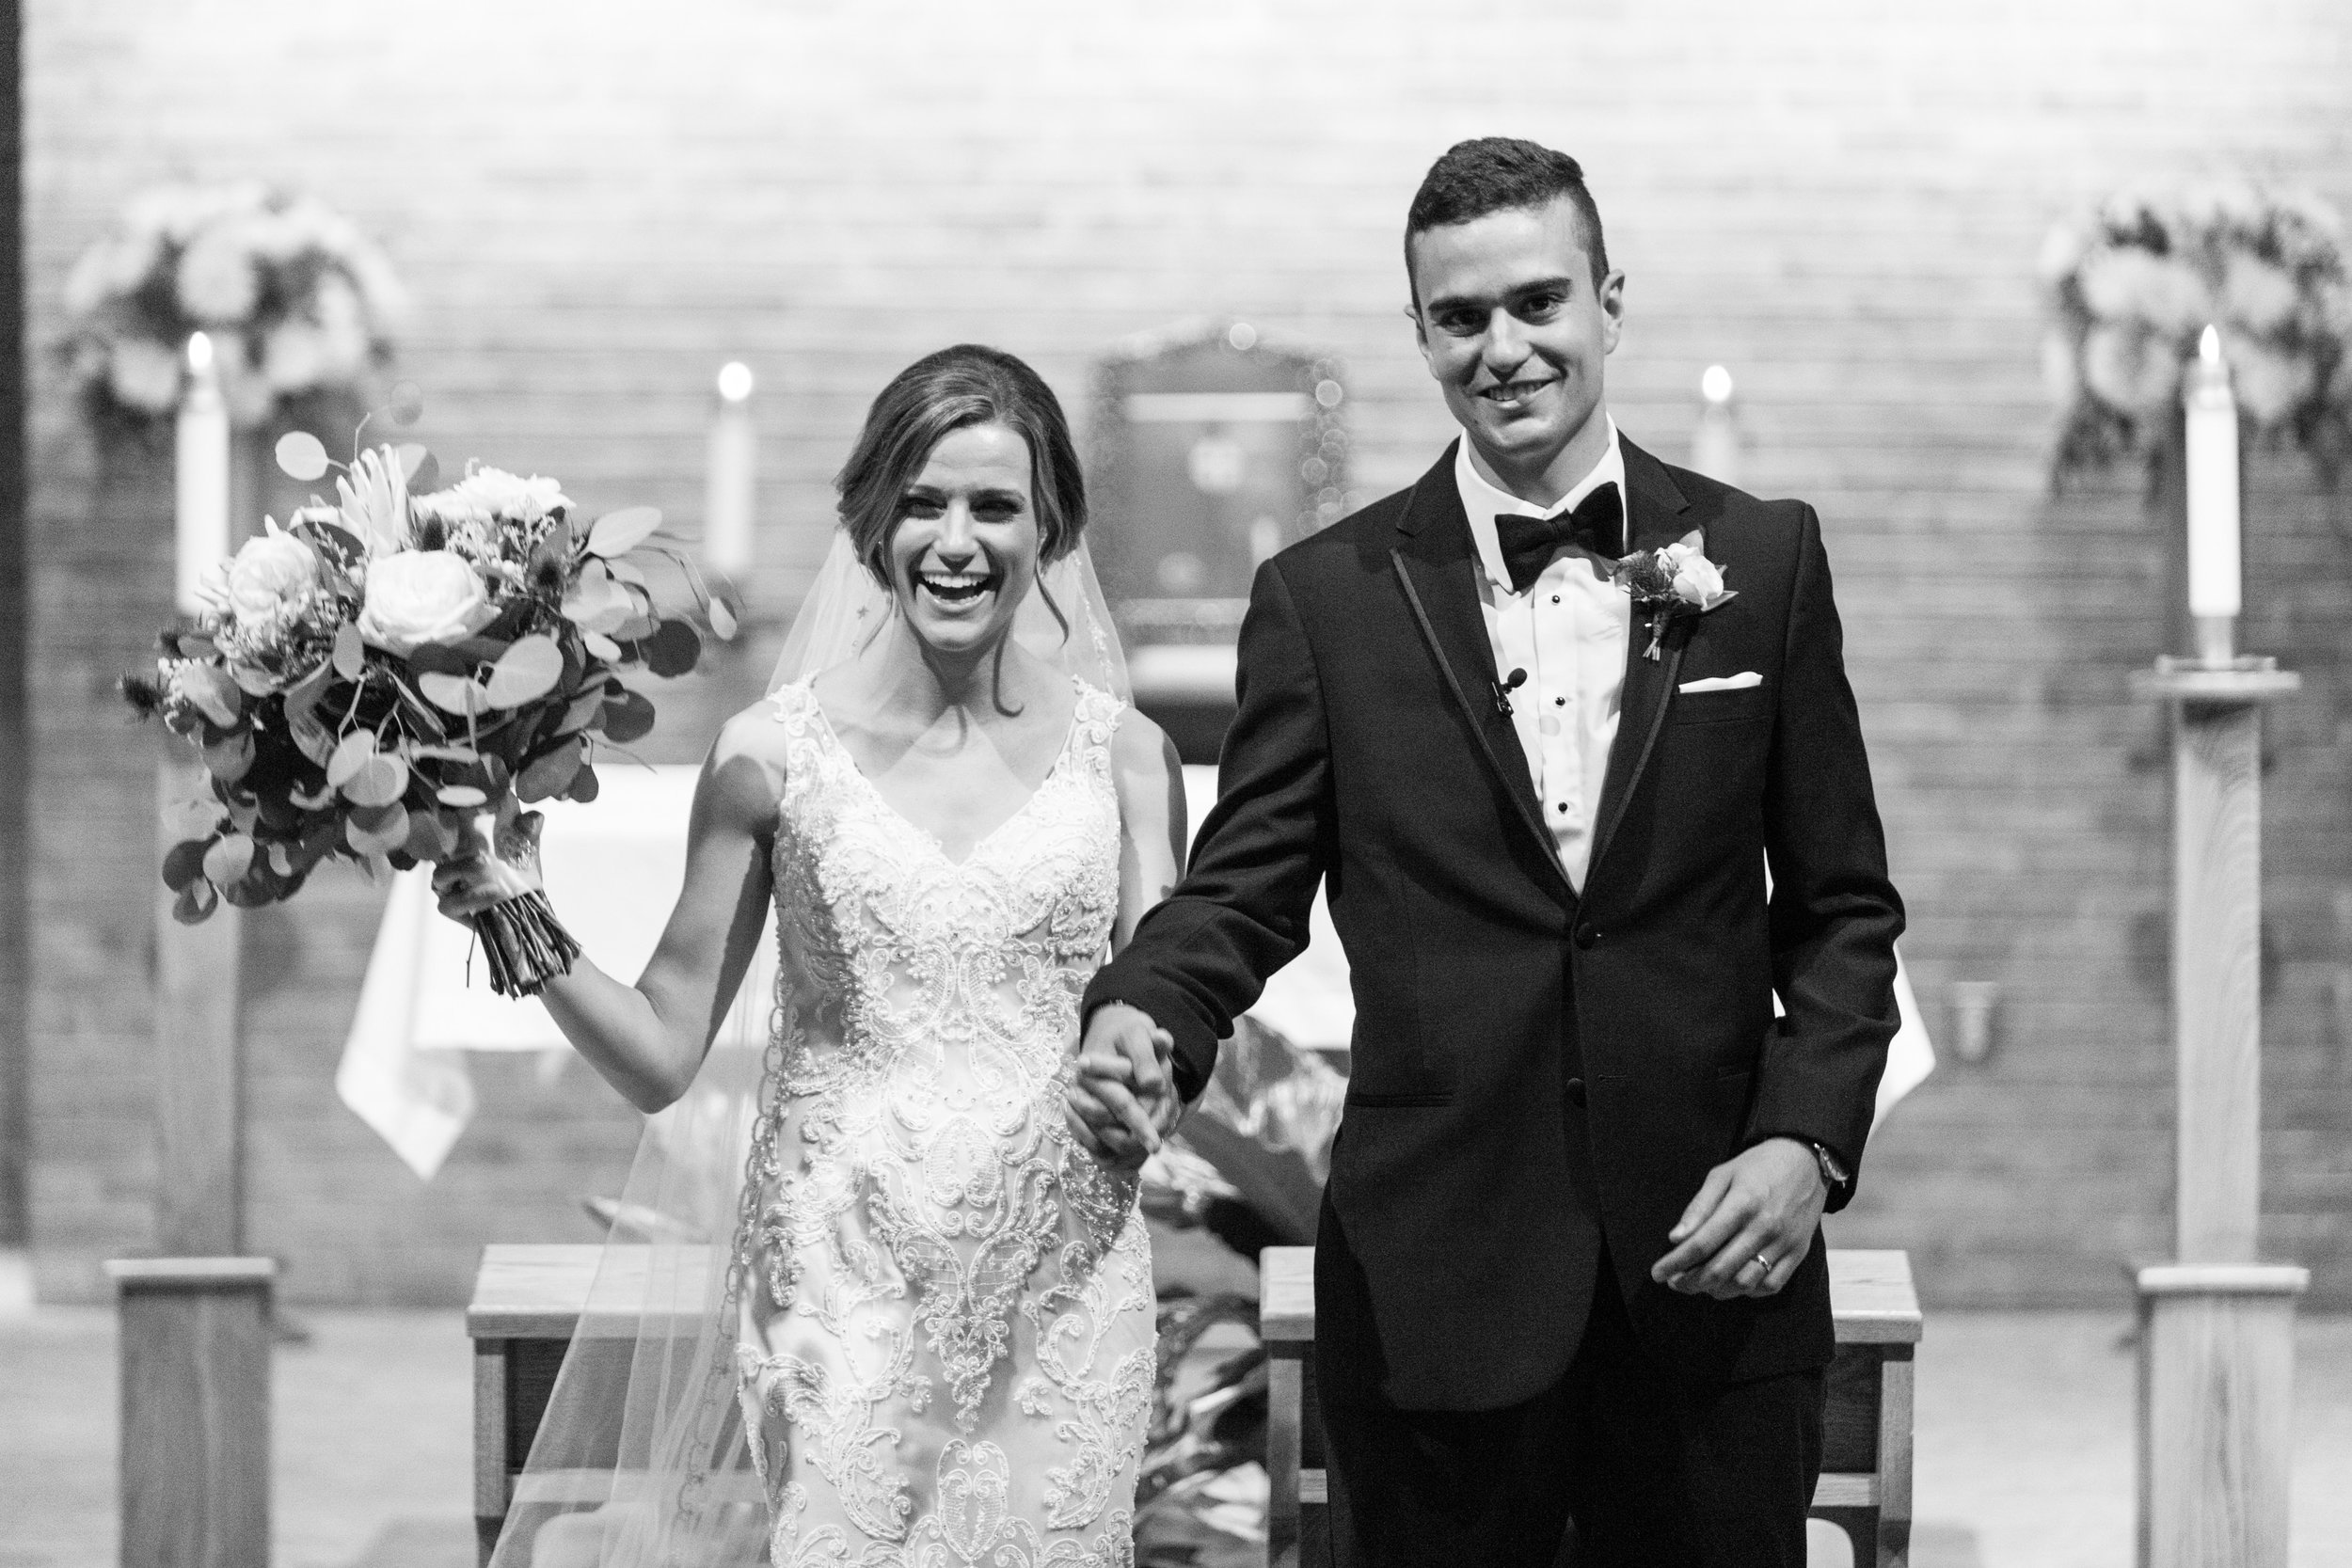 Bride and groom's Pittsburgh wedding ceremony planned by Exhale Events. Find more wedding inspiration at exhale-events.com!